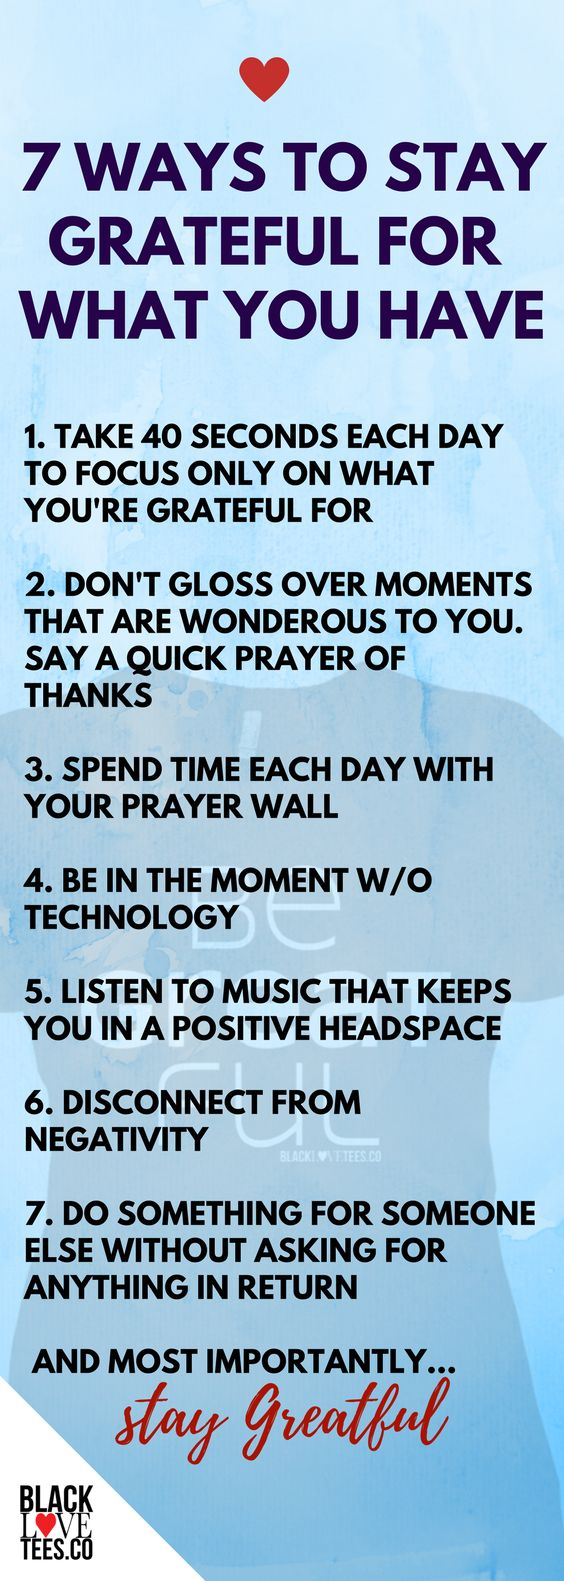 7 Ways to be gratefulf for what you have. Take 40 seconds a day to focus on what you're grateful for... Don't gloss over moments that are wonderous to you say a quick prayer of thanks